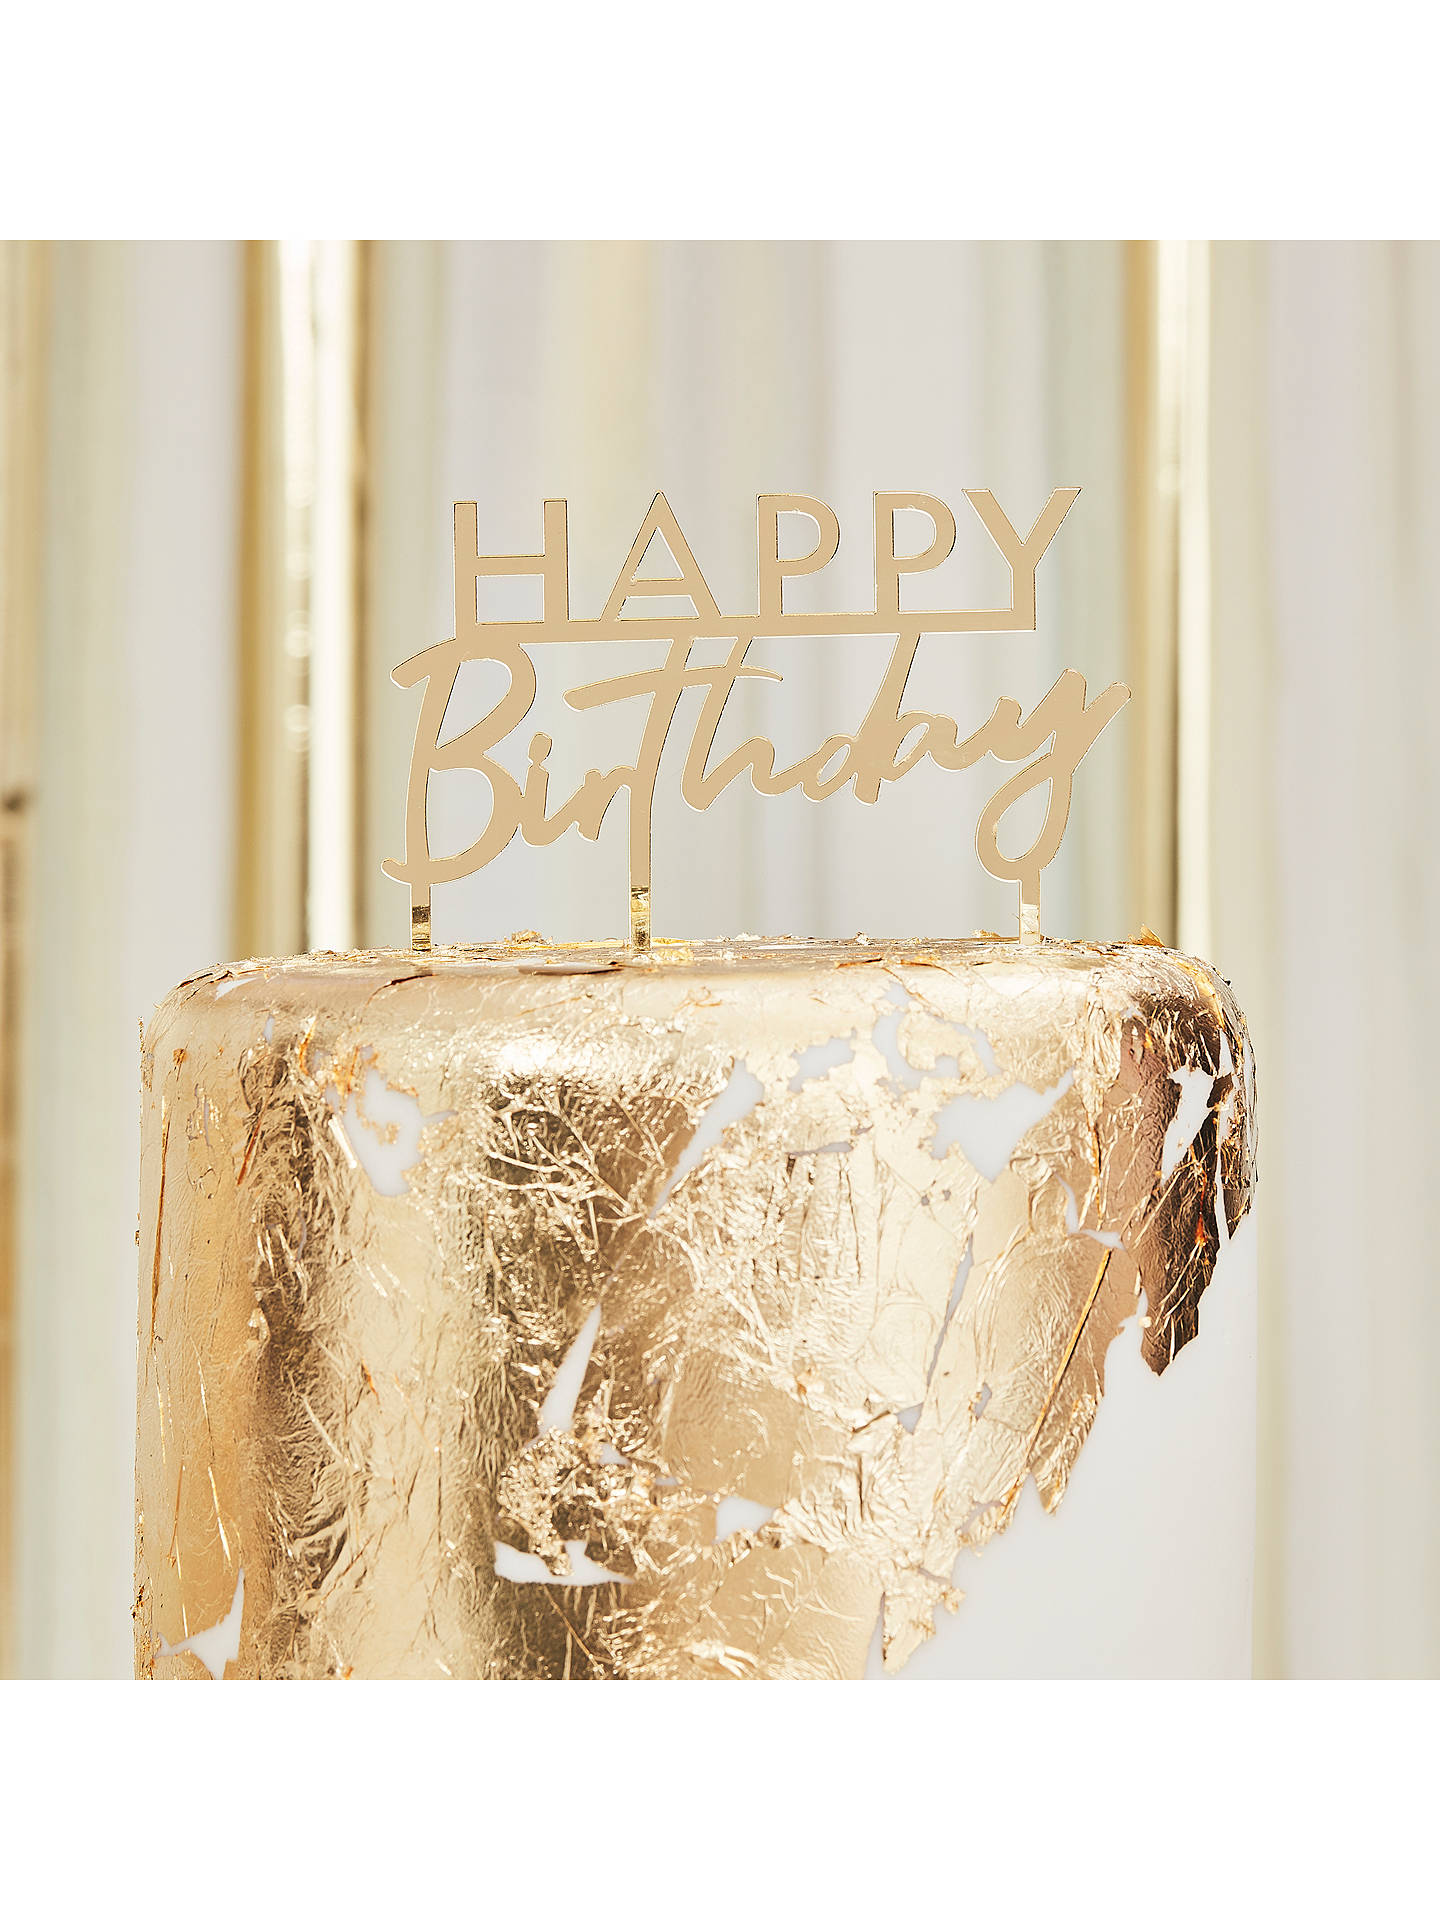 Swell Ginger Ray Gold Happy Birthday Cake Topper At John Lewis Partners Funny Birthday Cards Online Alyptdamsfinfo